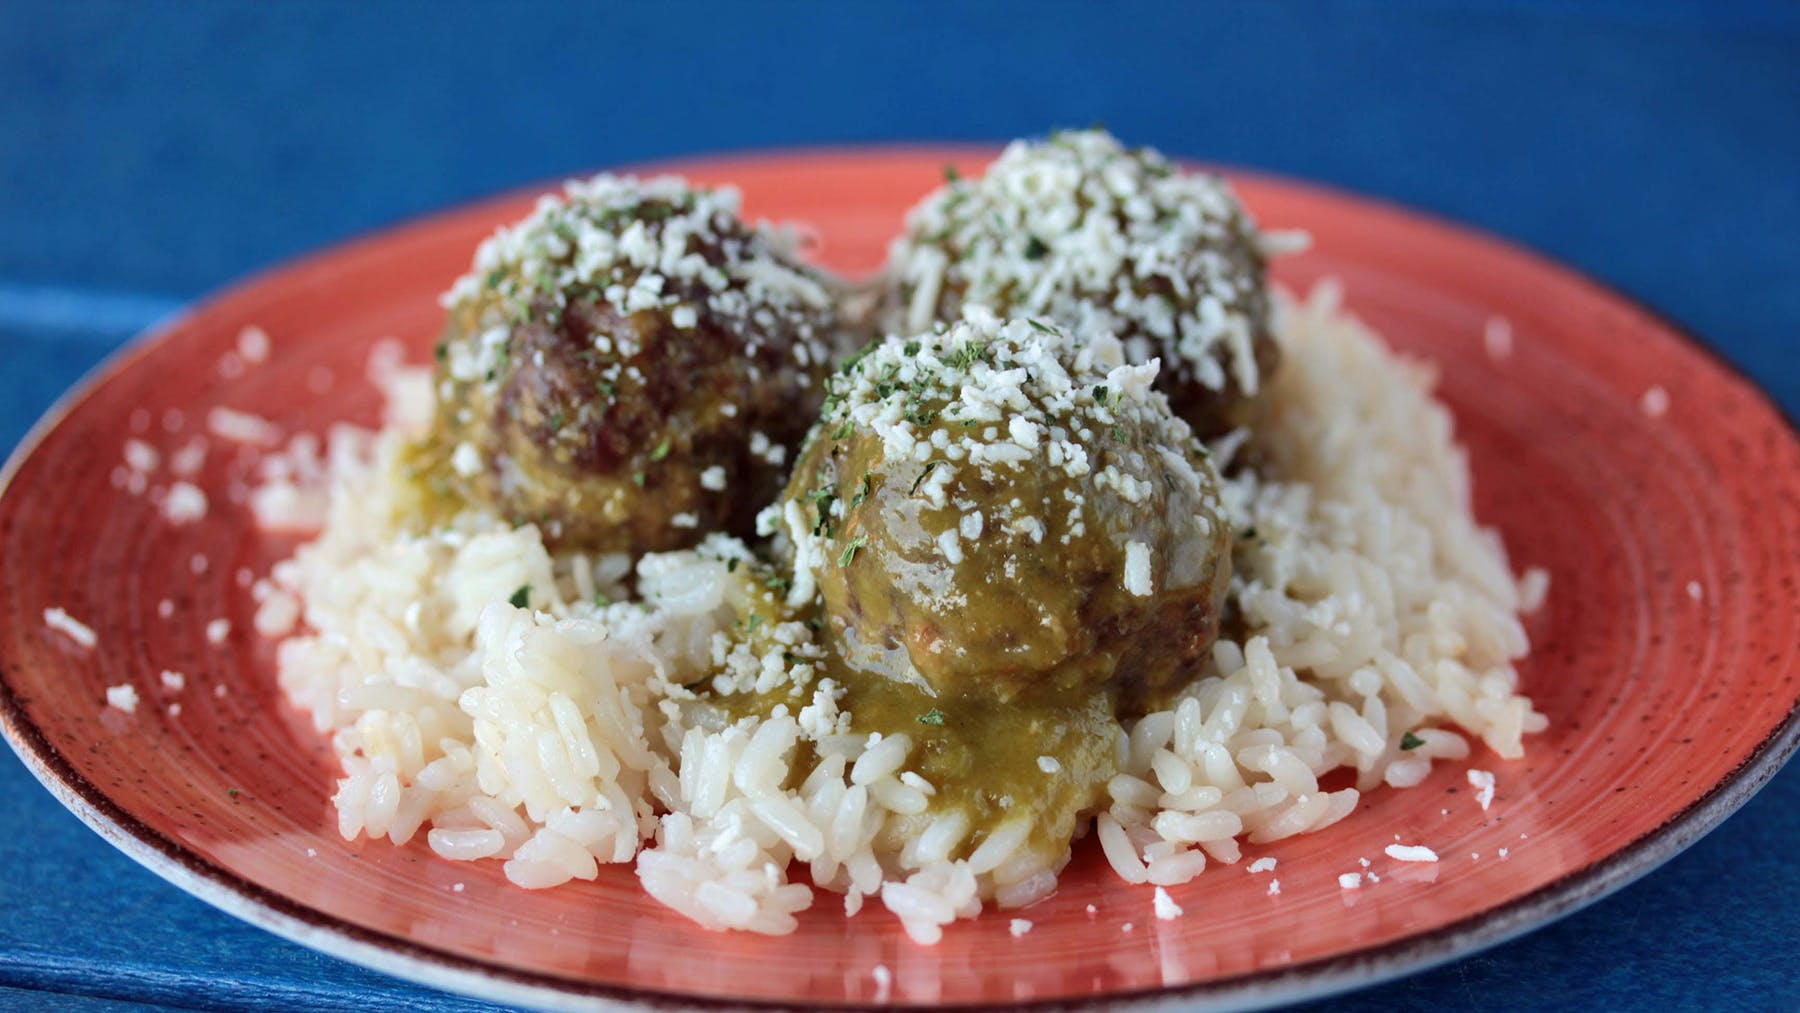 a plate of meatballs on top of rice